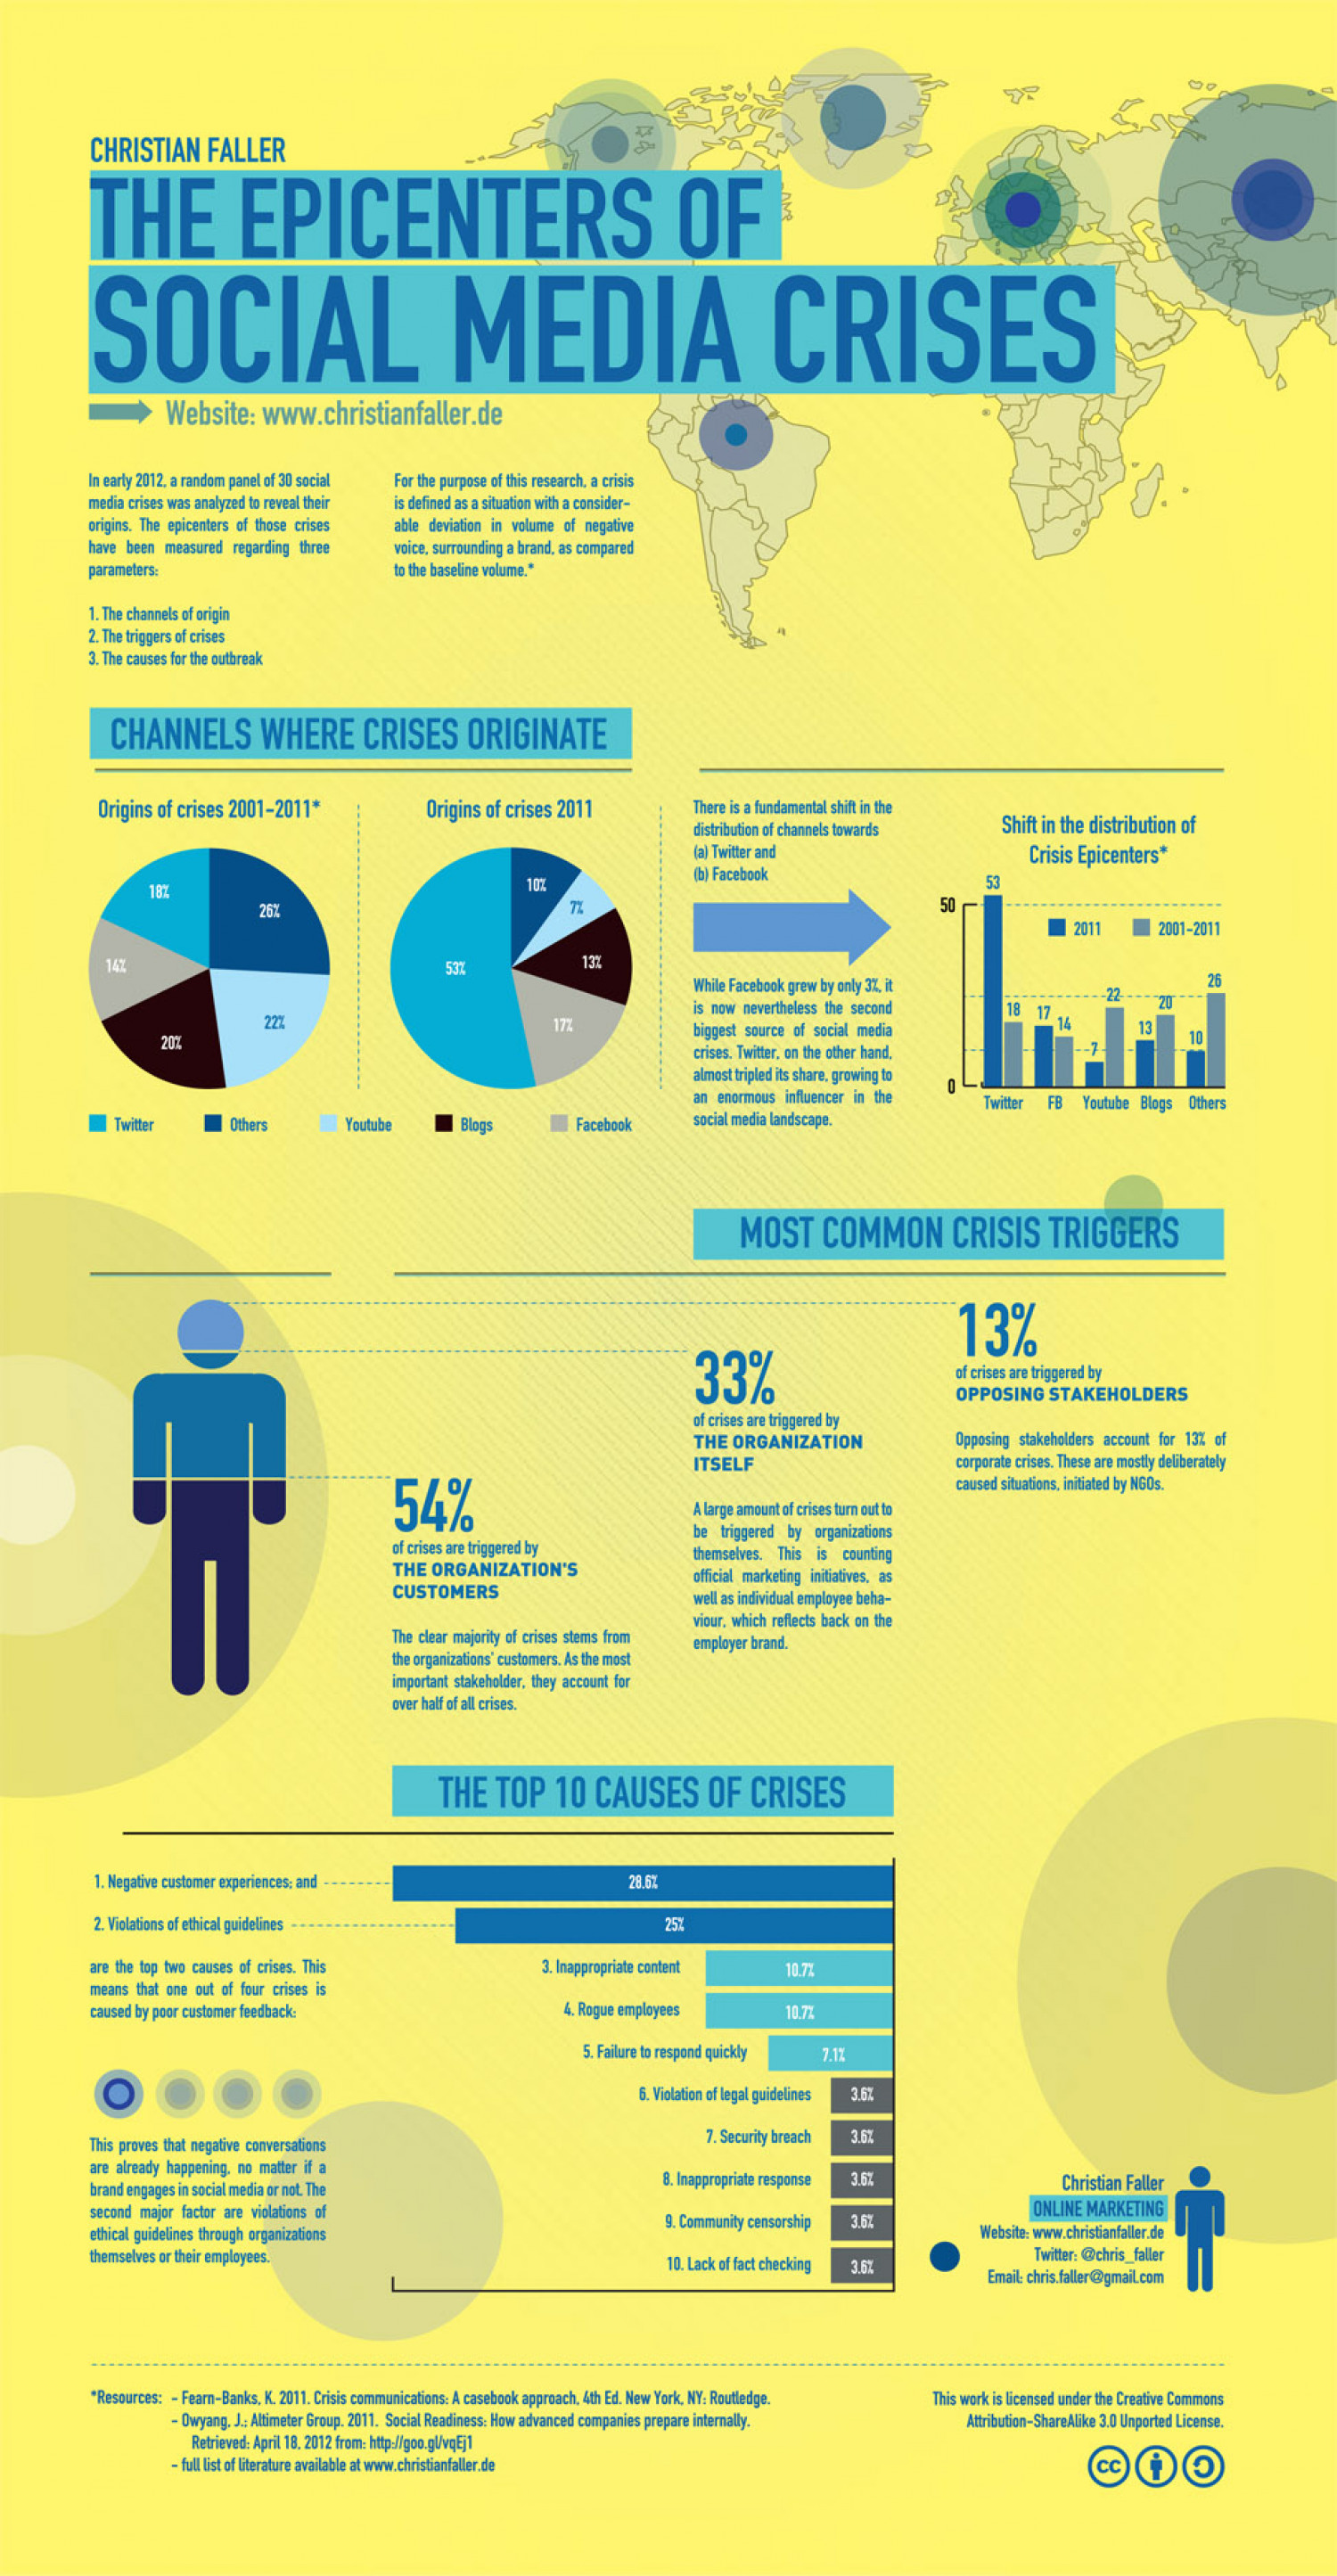 The Epicenters of Social Media Crises Infographic